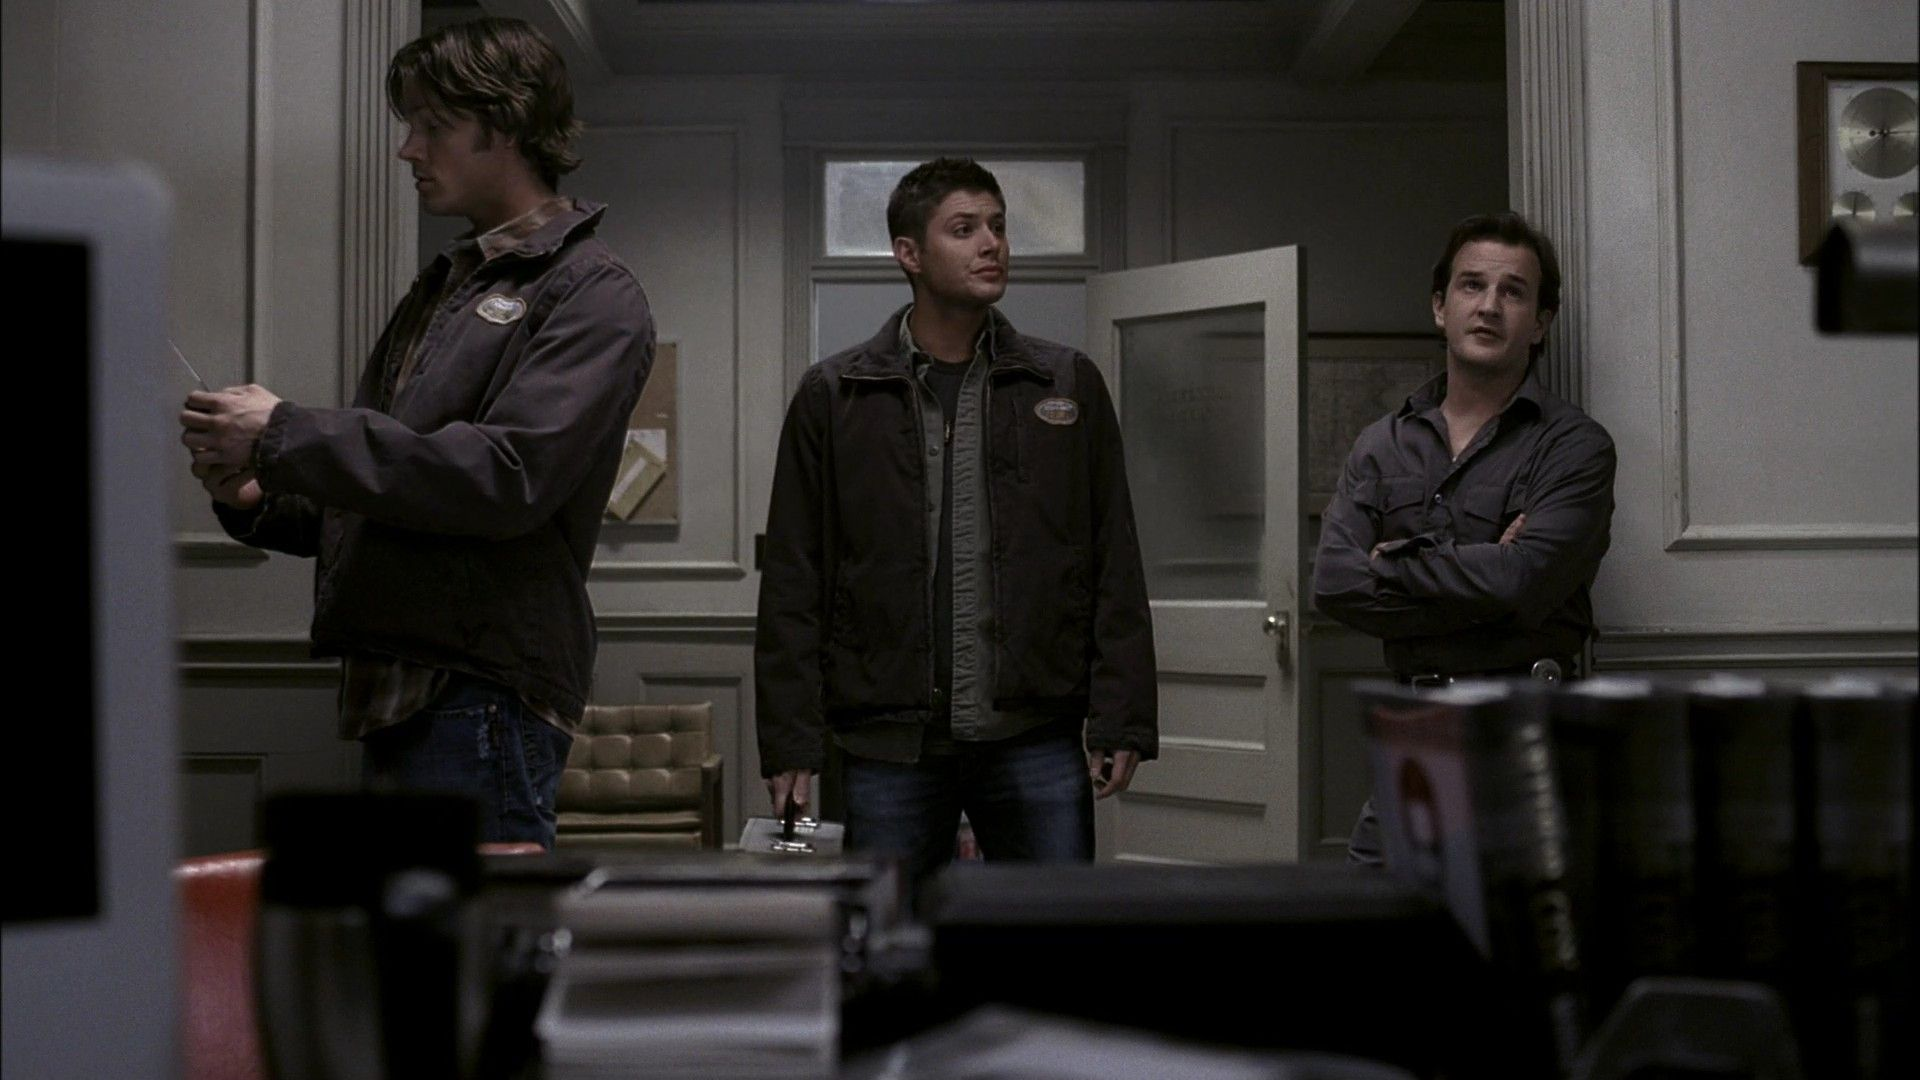 https://thewinchesterfamilybusiness.com/images/CaptionThis/2021/SPN_02x15.jpg